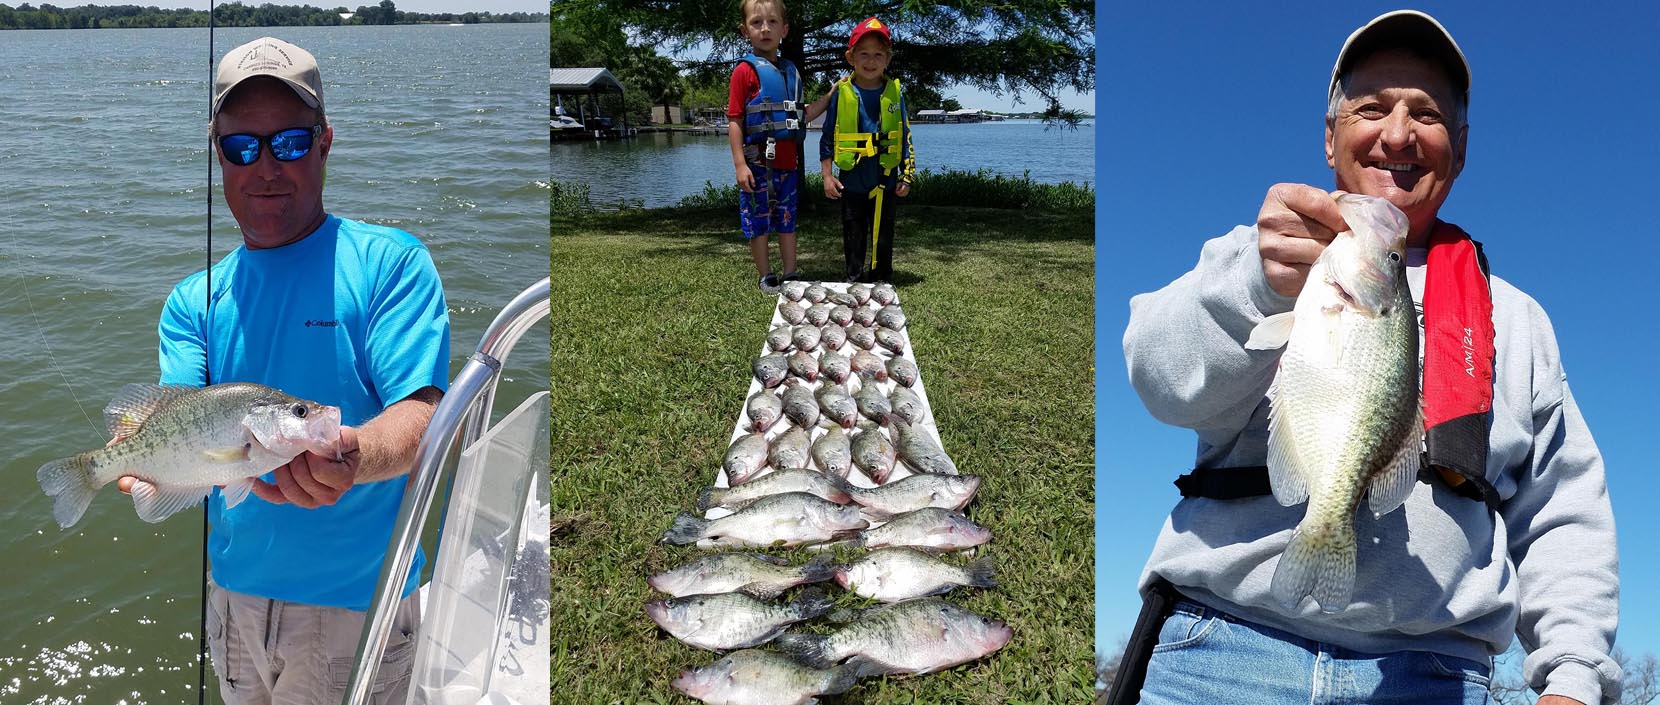 Texas crappie fishing service crappie fishing guide for Crappie fishing texas